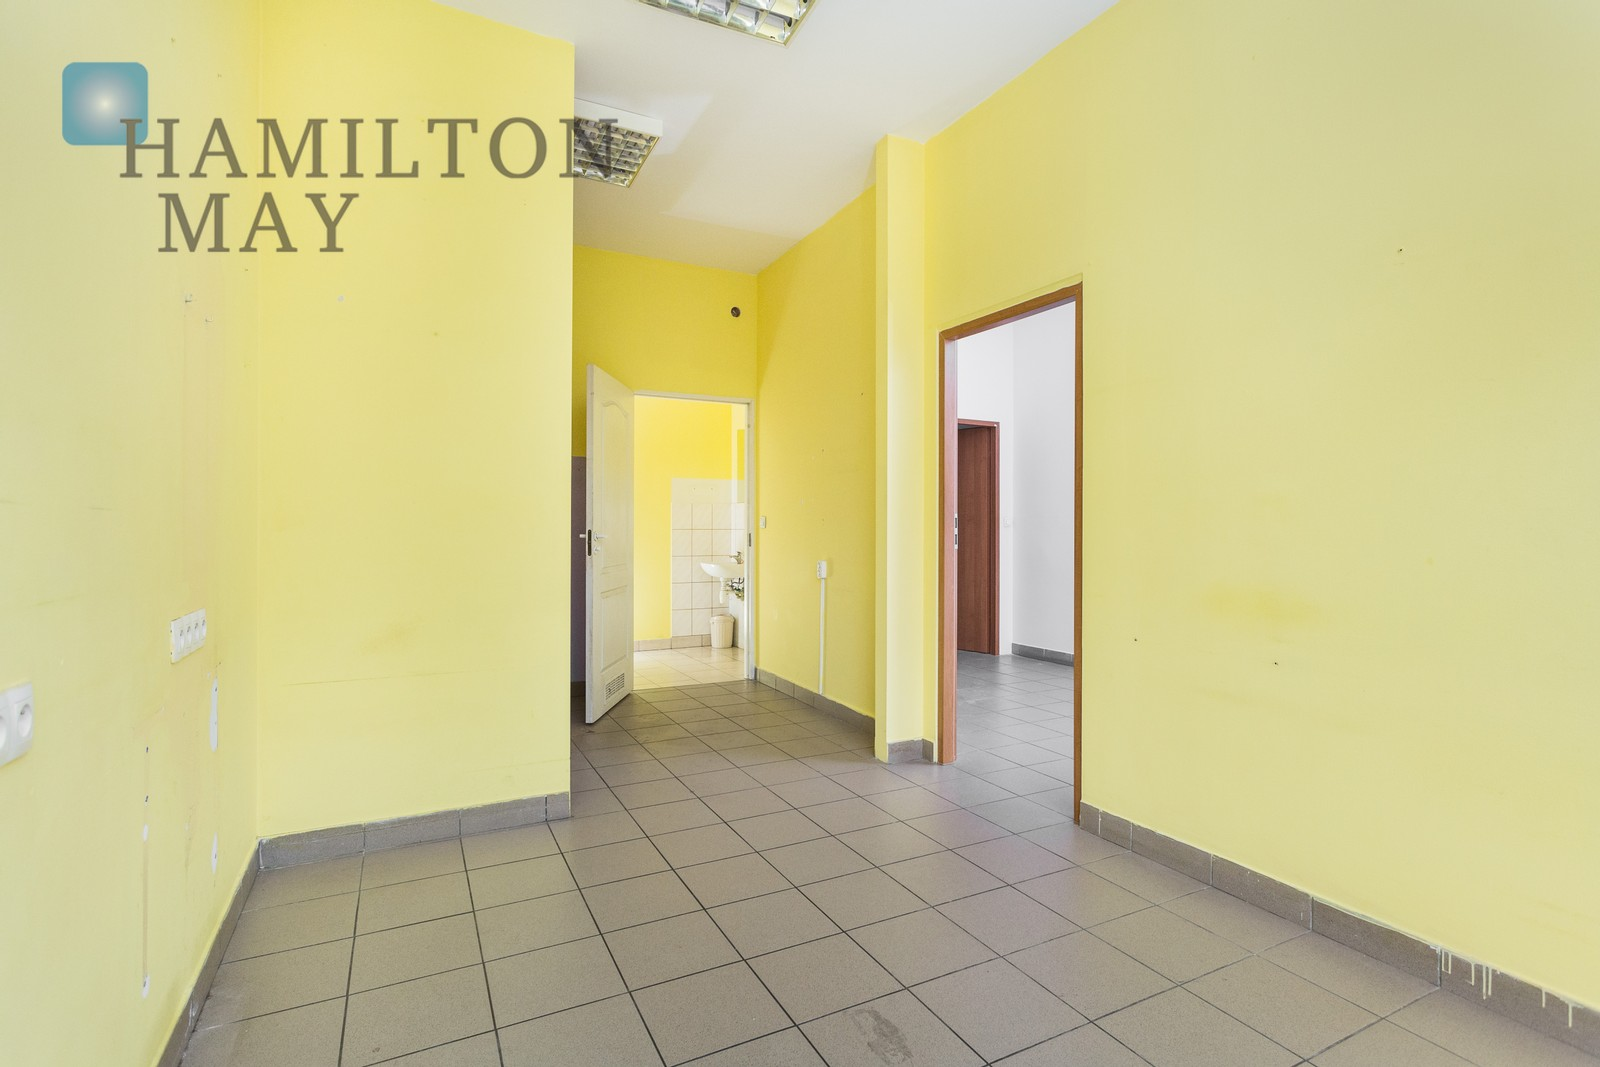 Commercial premises of 41 sq m, ideal for services such as a hair and beauty salon or a retail outlet Krakow for rent